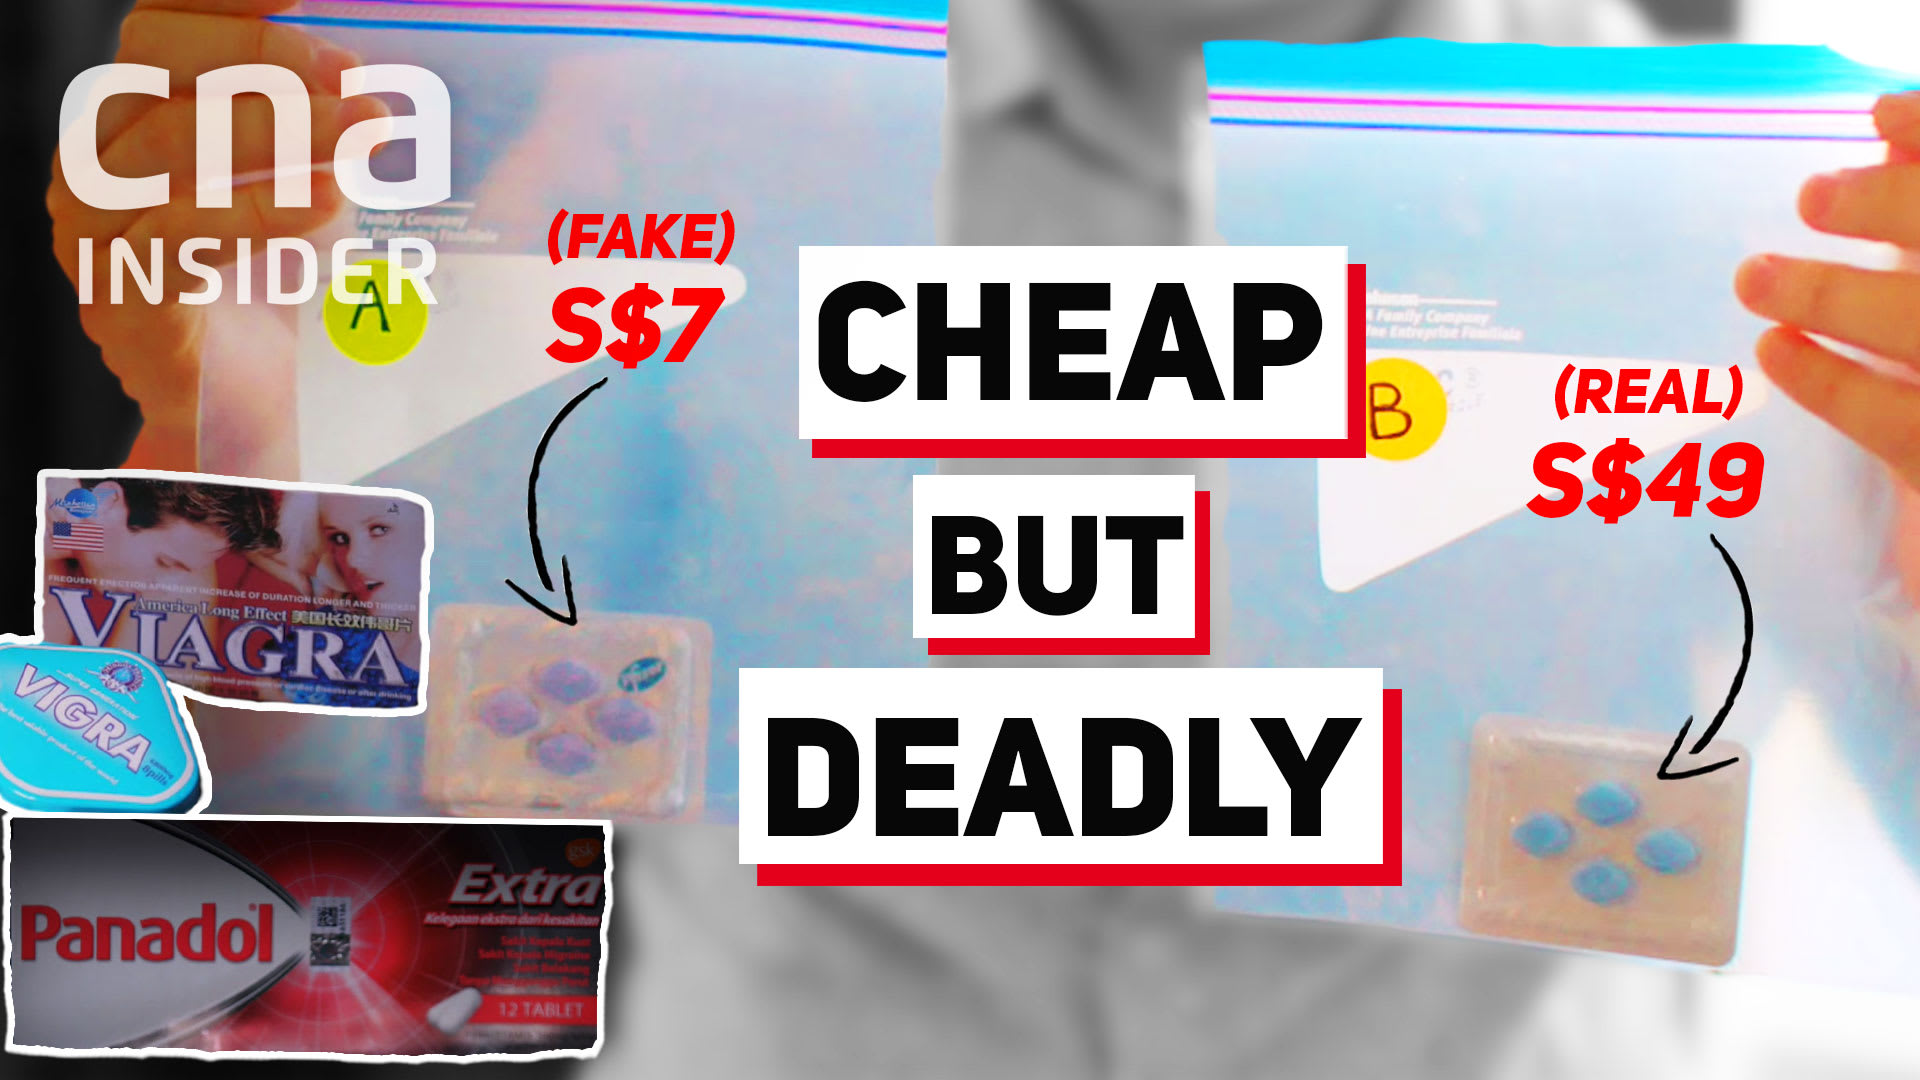 Fake medicine sold in Malaysia could kill you